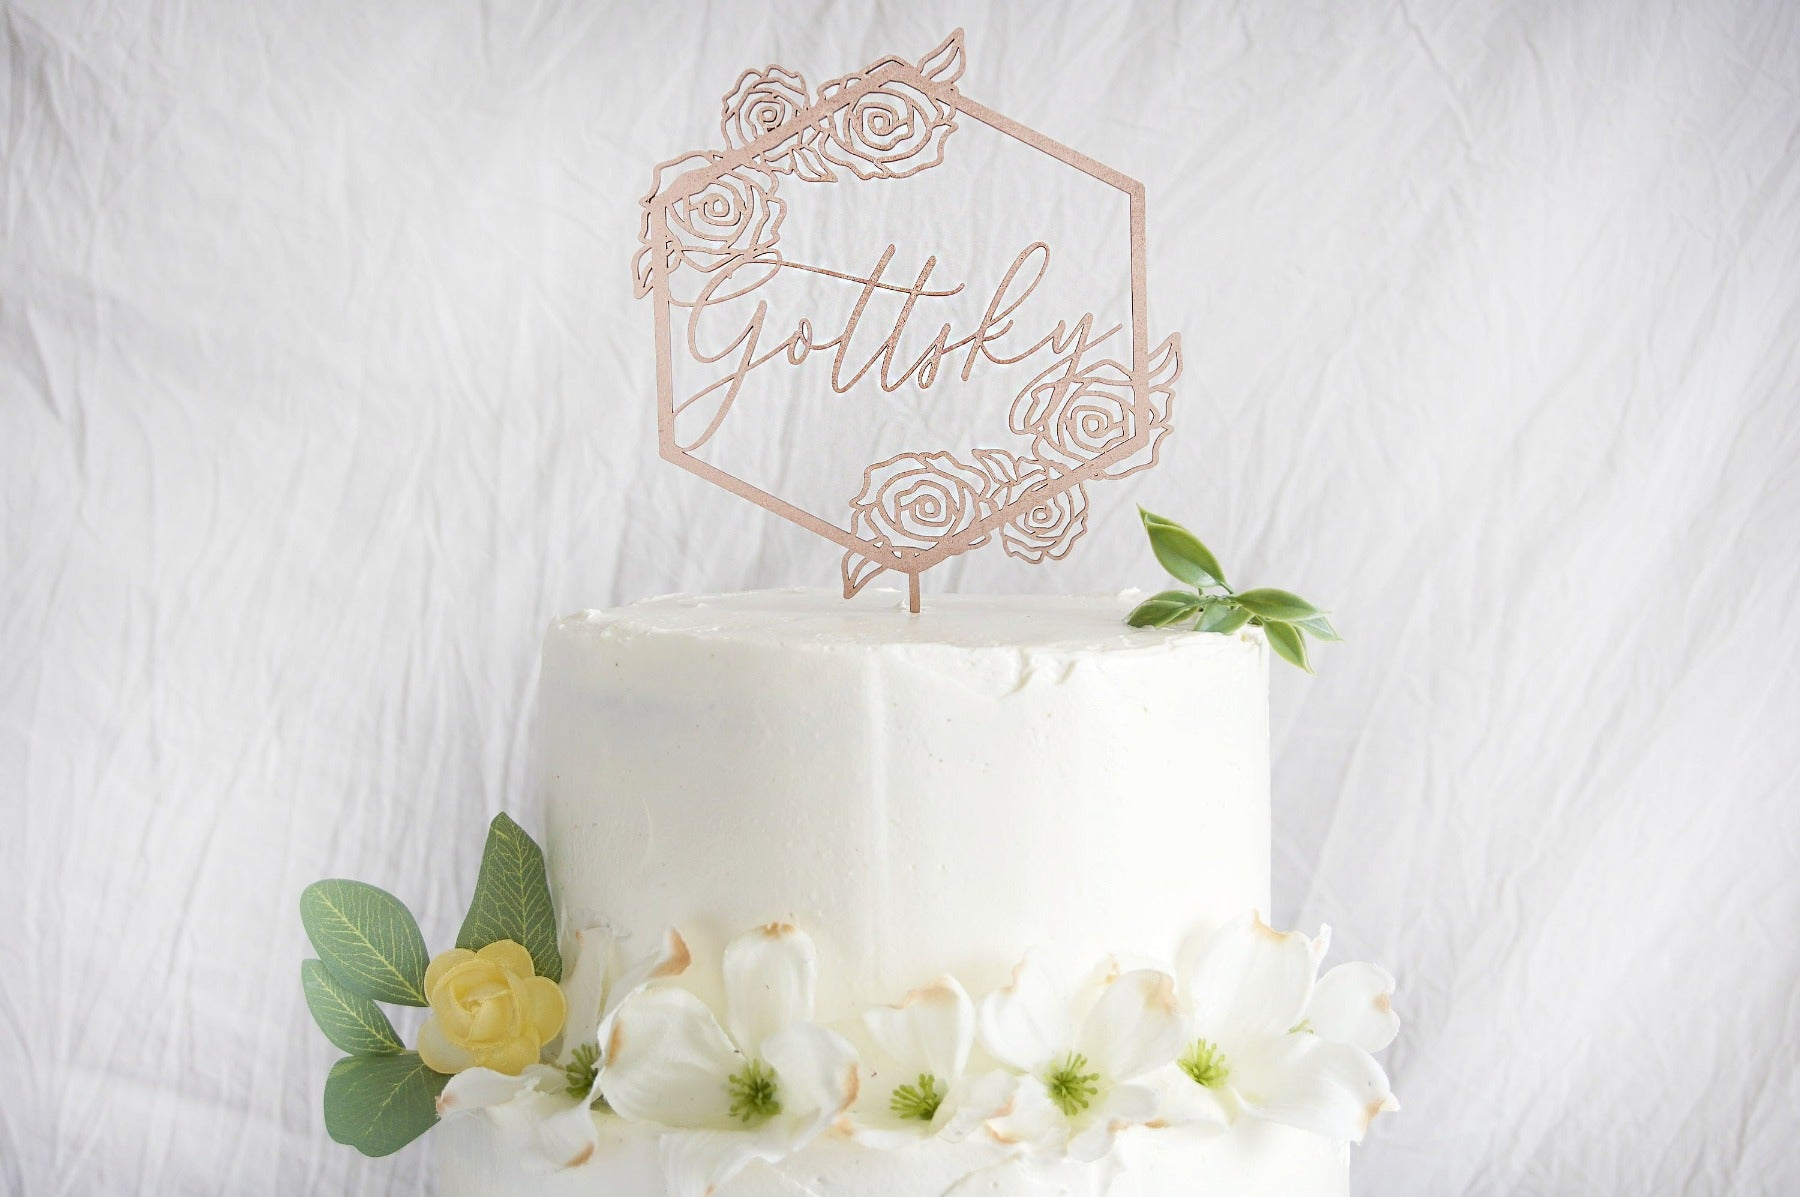 Floral Wedding Cake Topper | Custom Wedding Cake Topper | Personalized Name Geometric Cake Topper | Gold, Silver, or Rose Gold Wood Gift